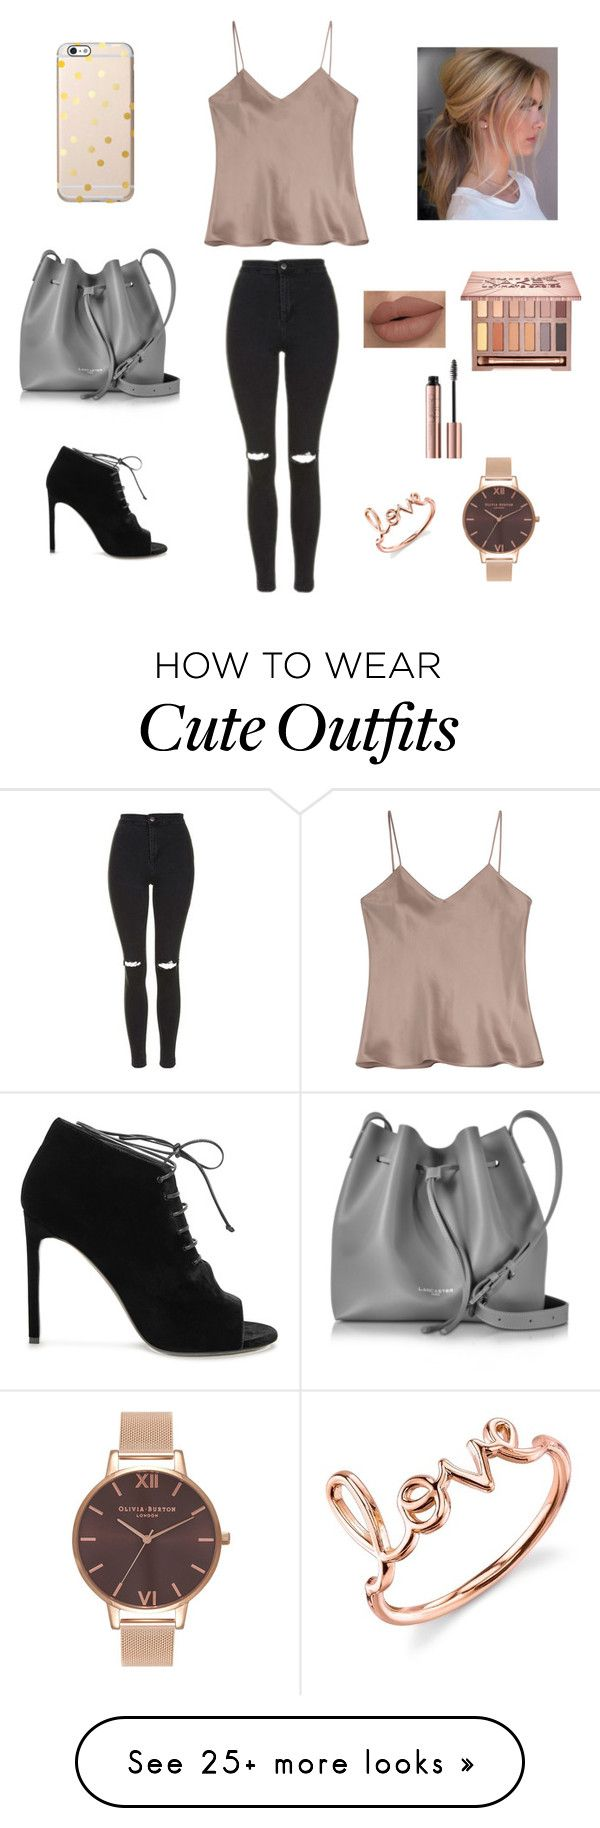 """""""Cute outfit"""" by stuff4m on Polyvore featuring Etro, Topshop, Lancaster, Yves Saint Laurent, Urban Decay, Sydney Evan and Olivia Burton"""